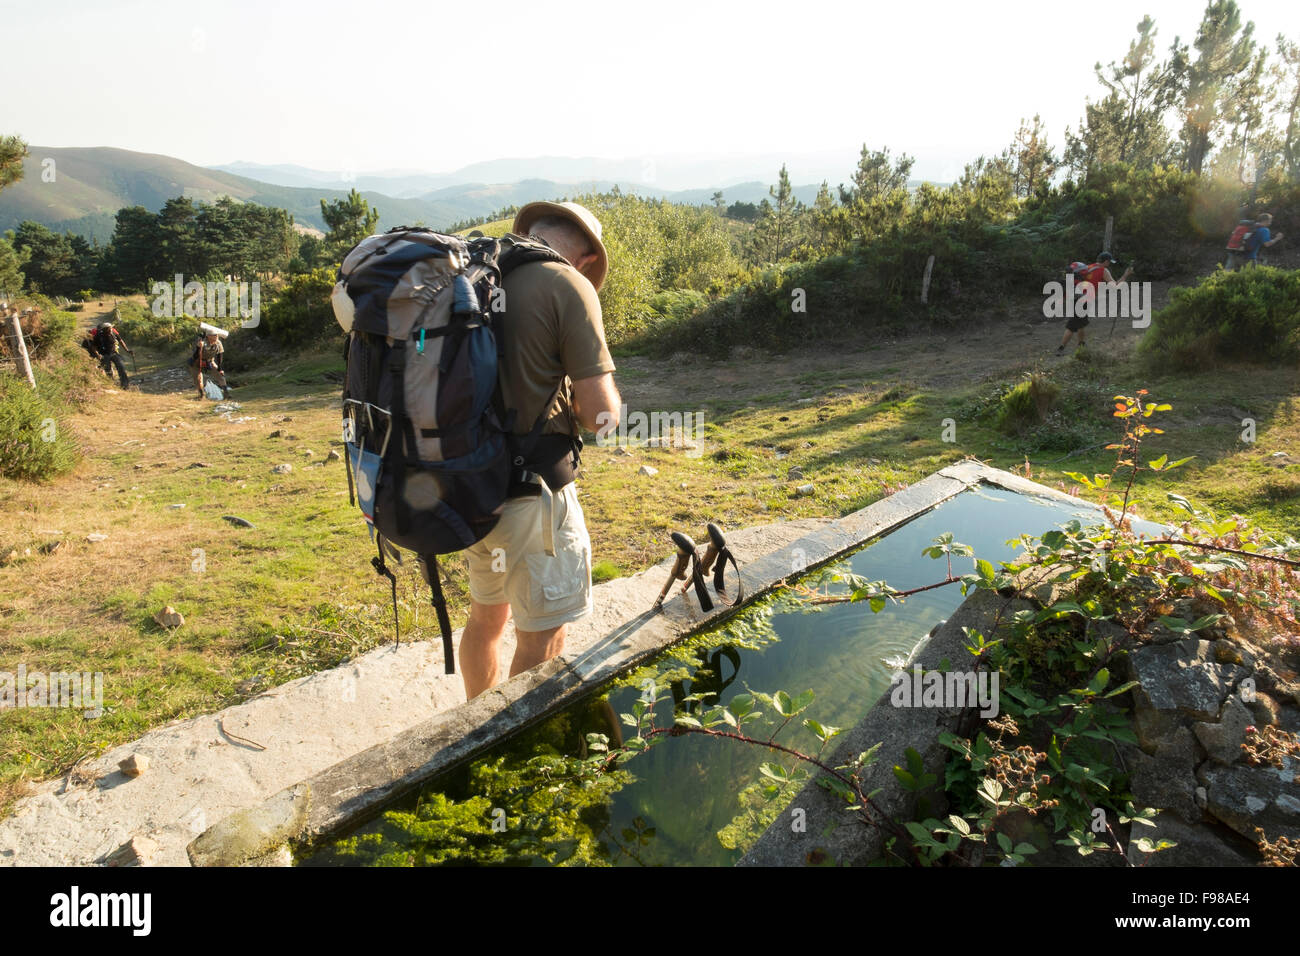 A spring along the Camino Primitivo is frequented by pilgrims in the northern mountains of Spain. - Stock Image